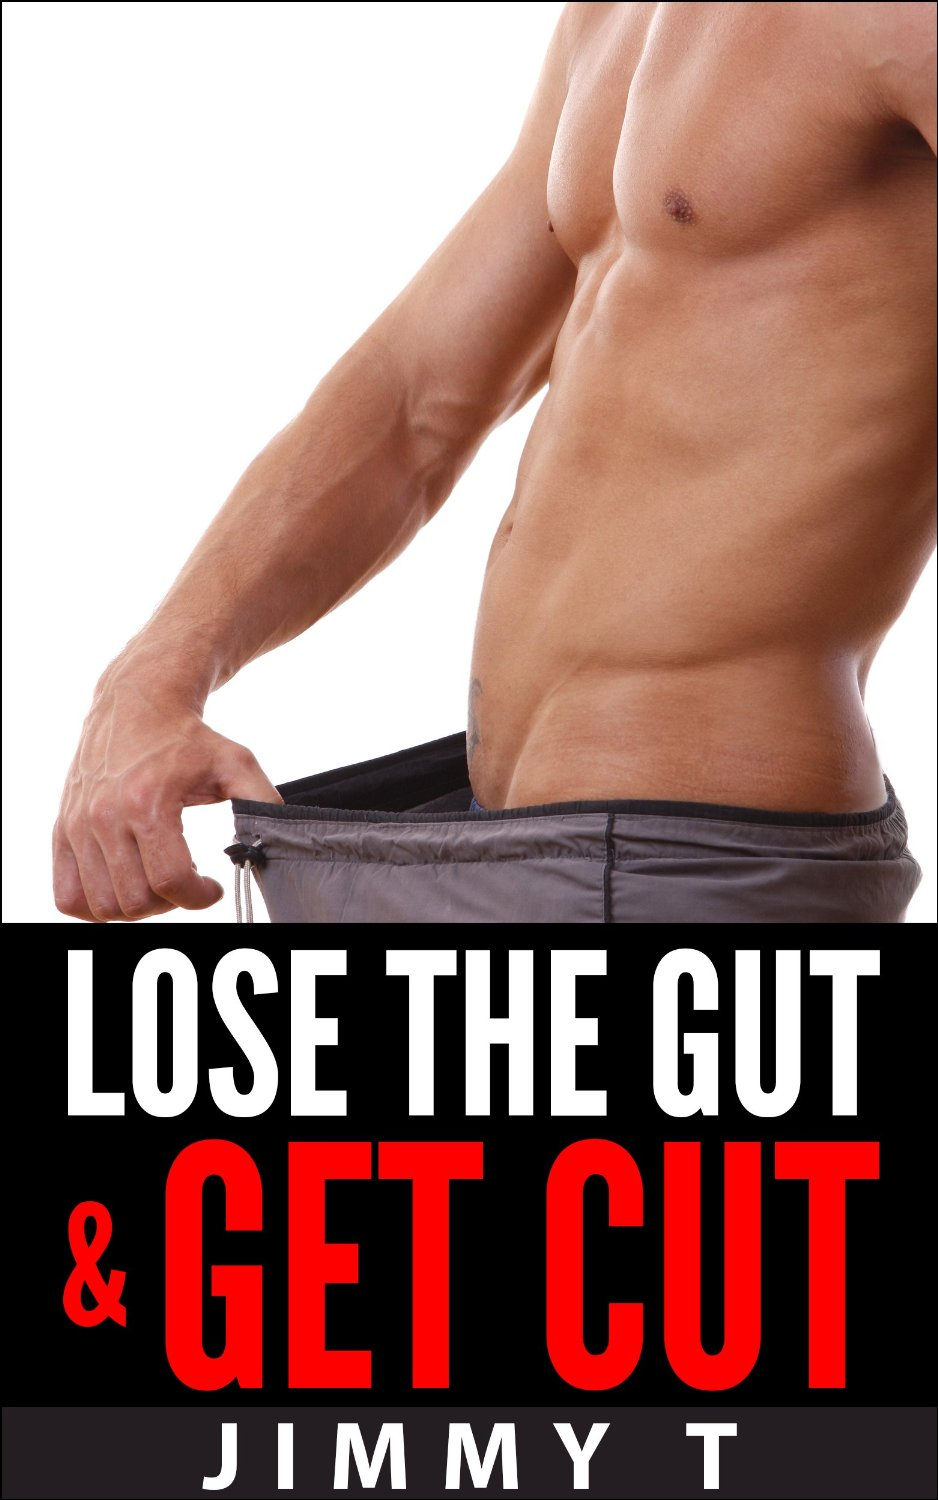 Lose the Gut & Get Cut free download